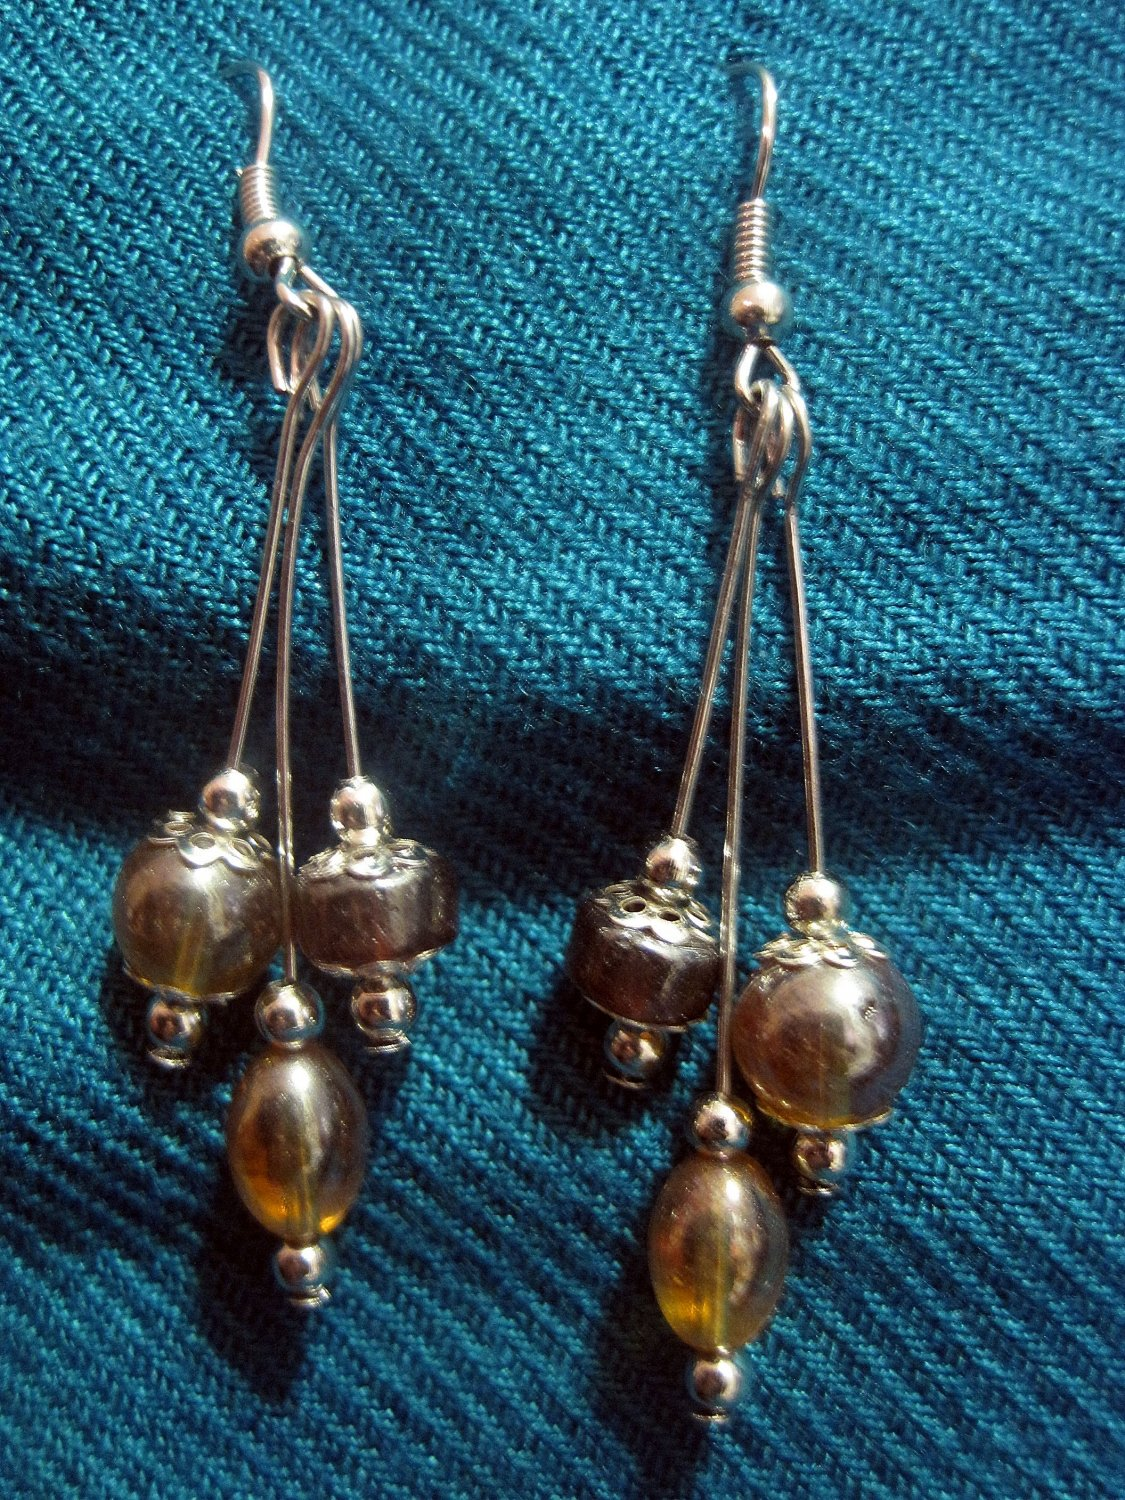 3 Tiered Amber Glass Earrings